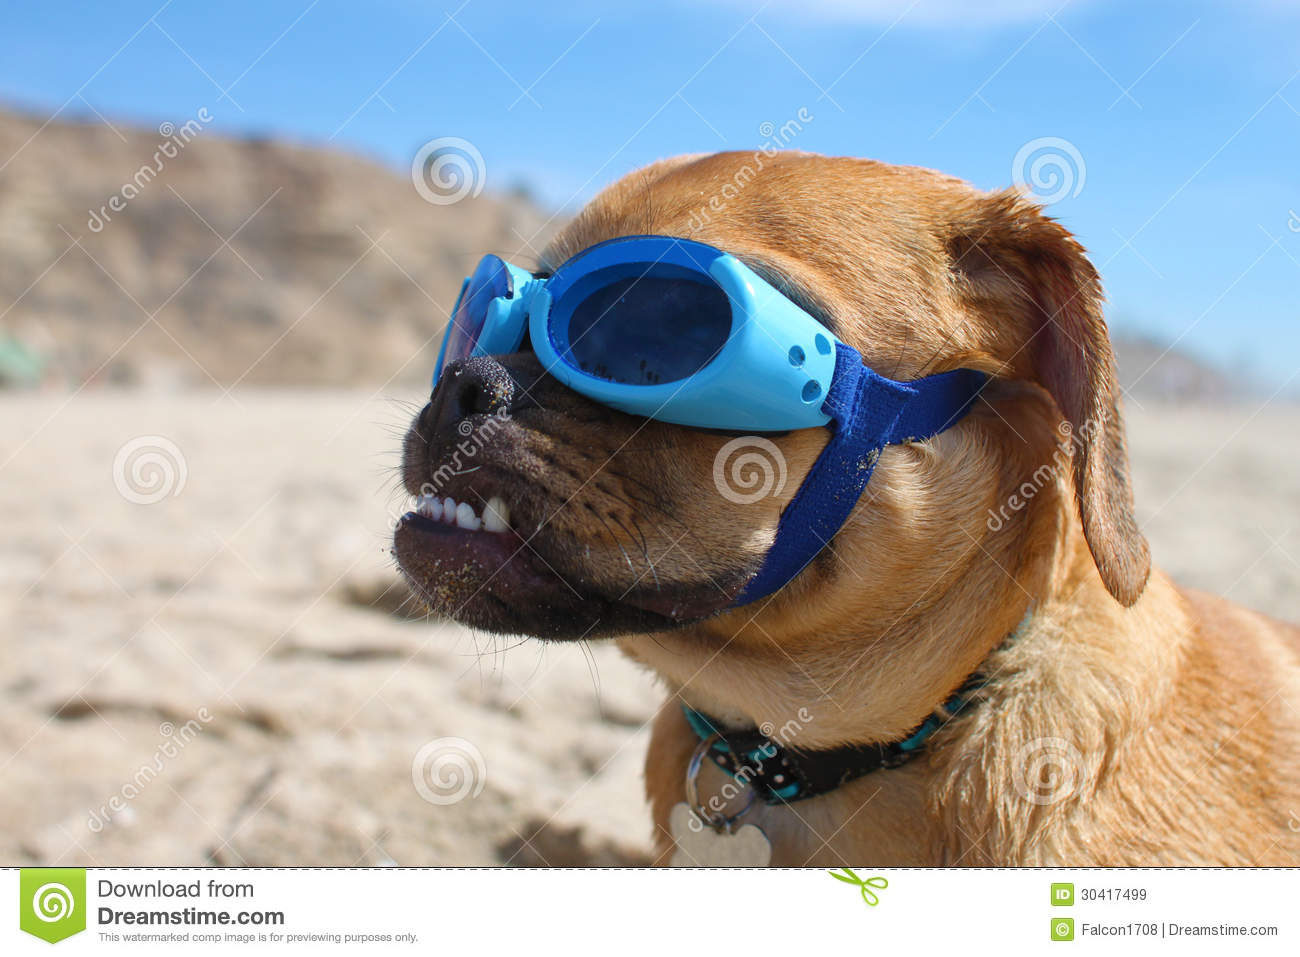 Doggles Royalty Free Stock Images.